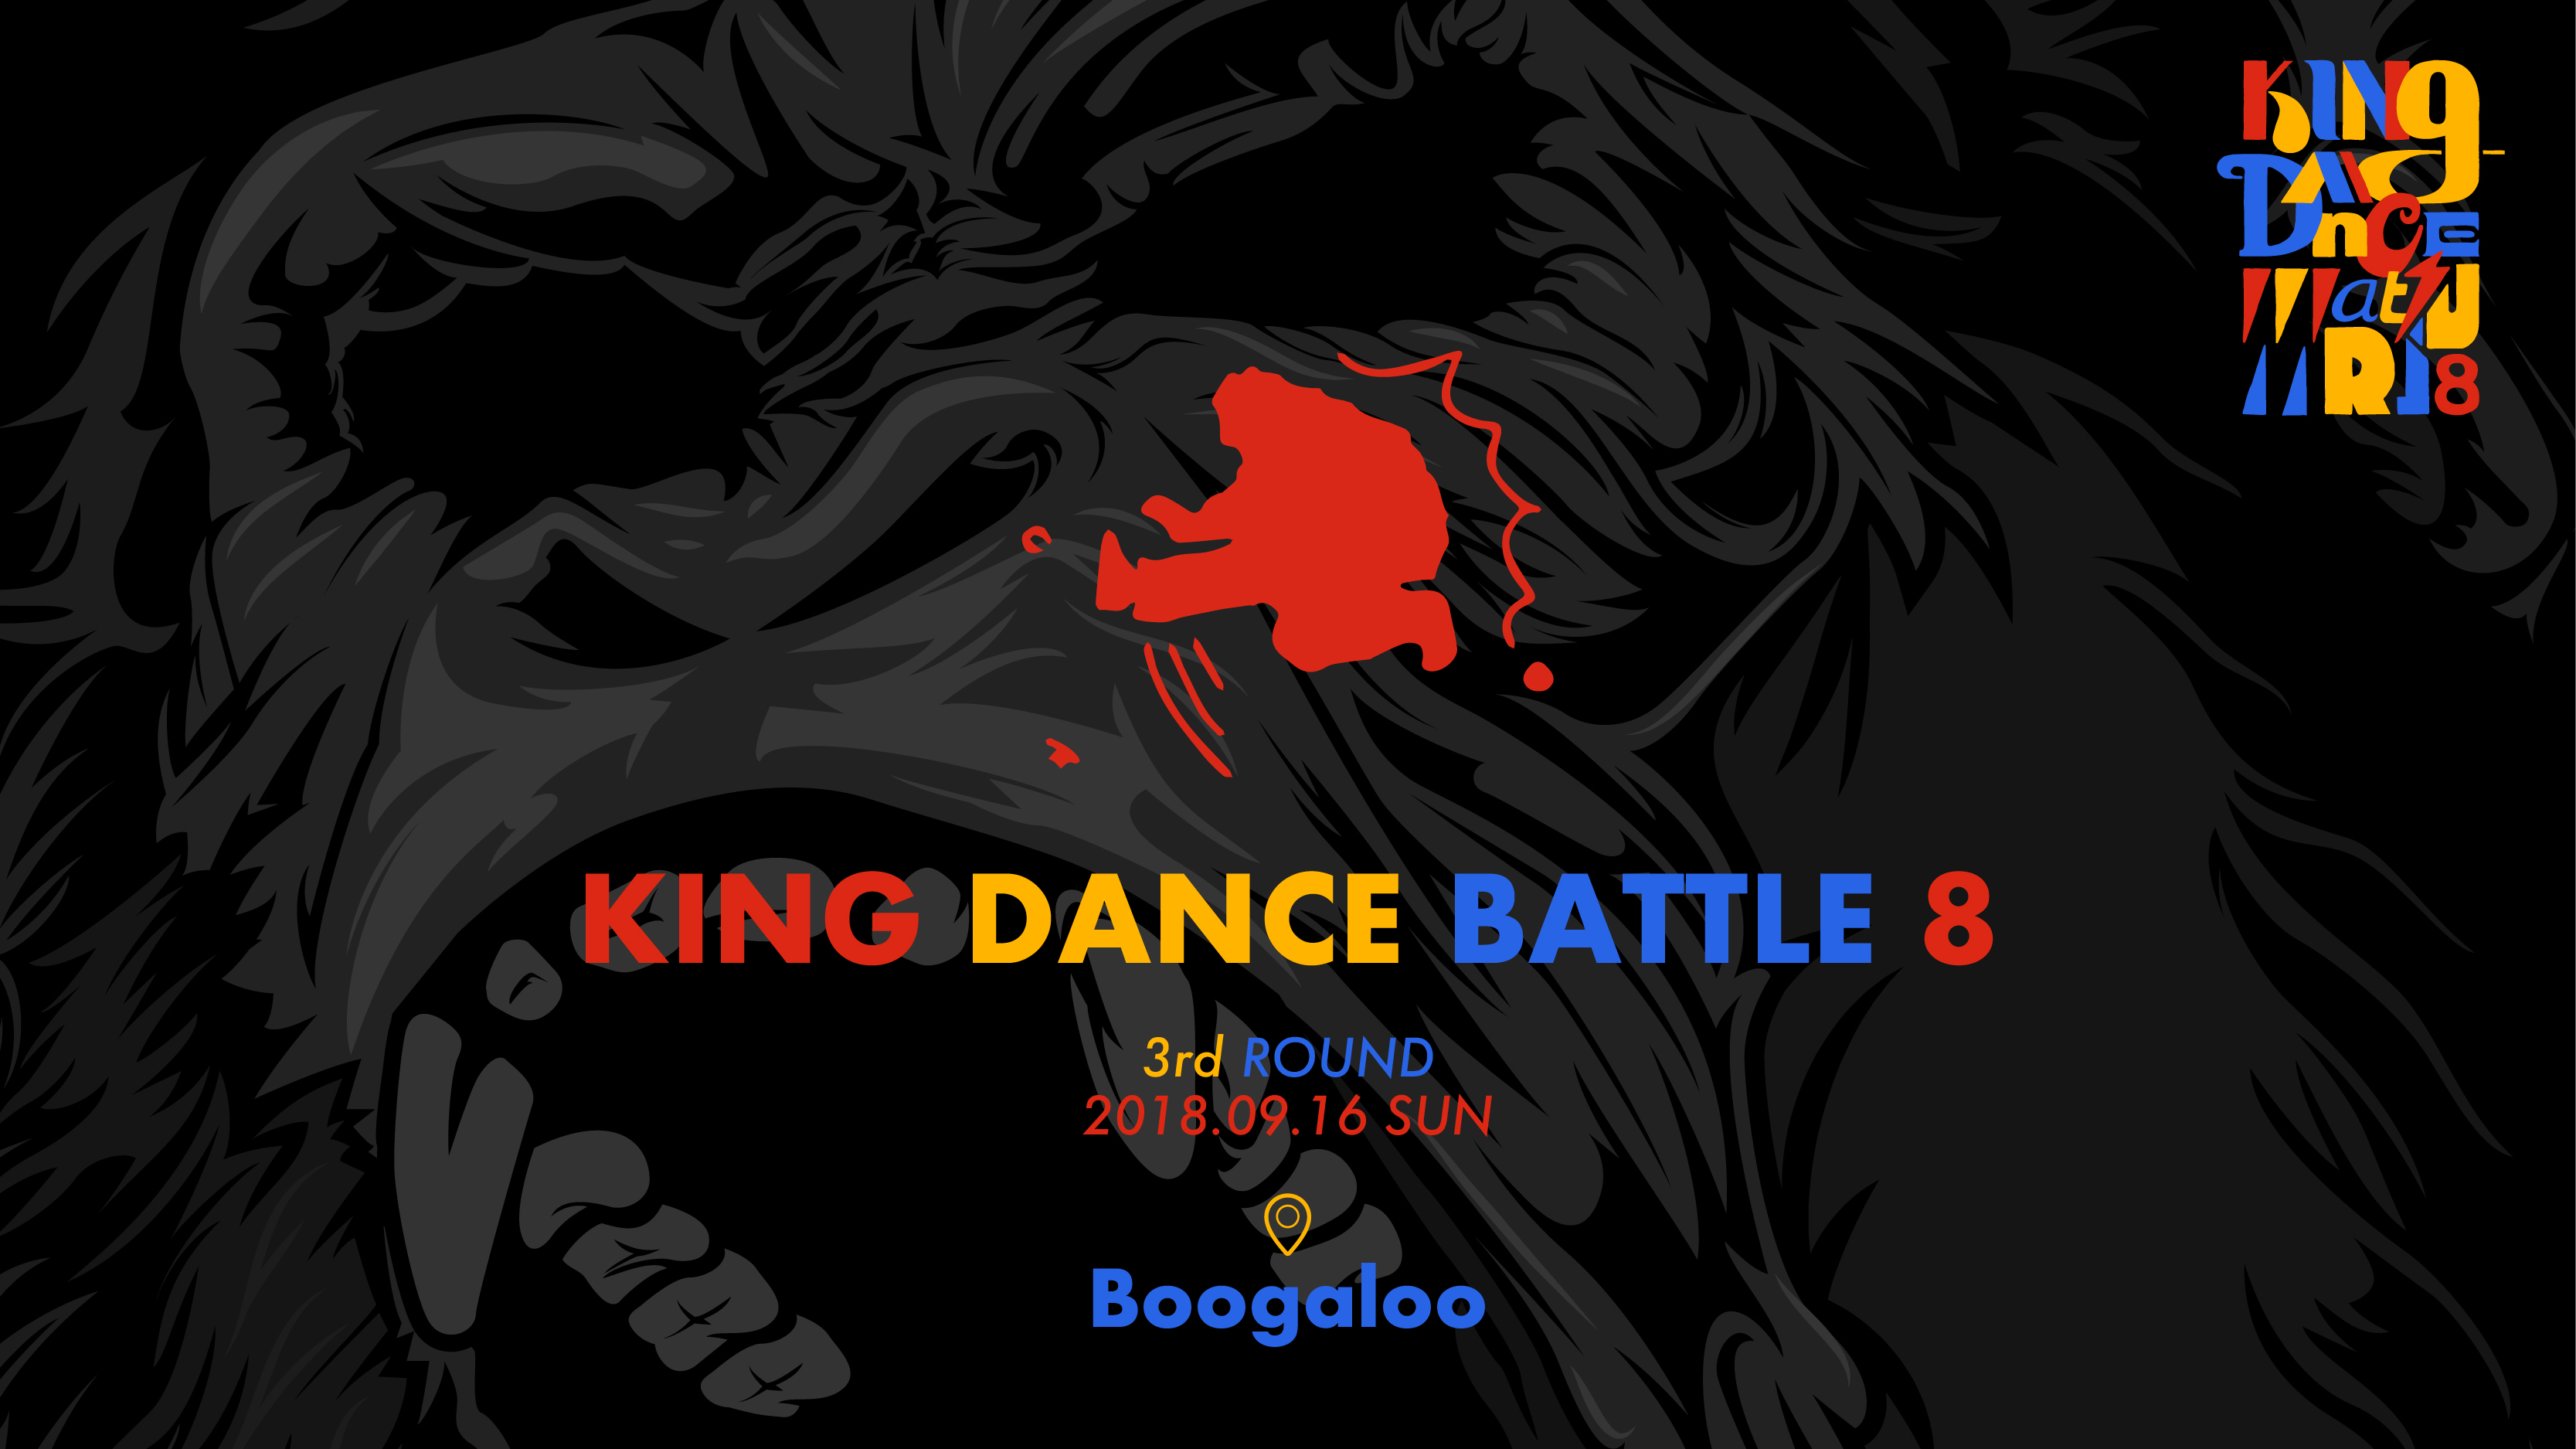 KING DANCE BATTLE8 -3rd ROUND-